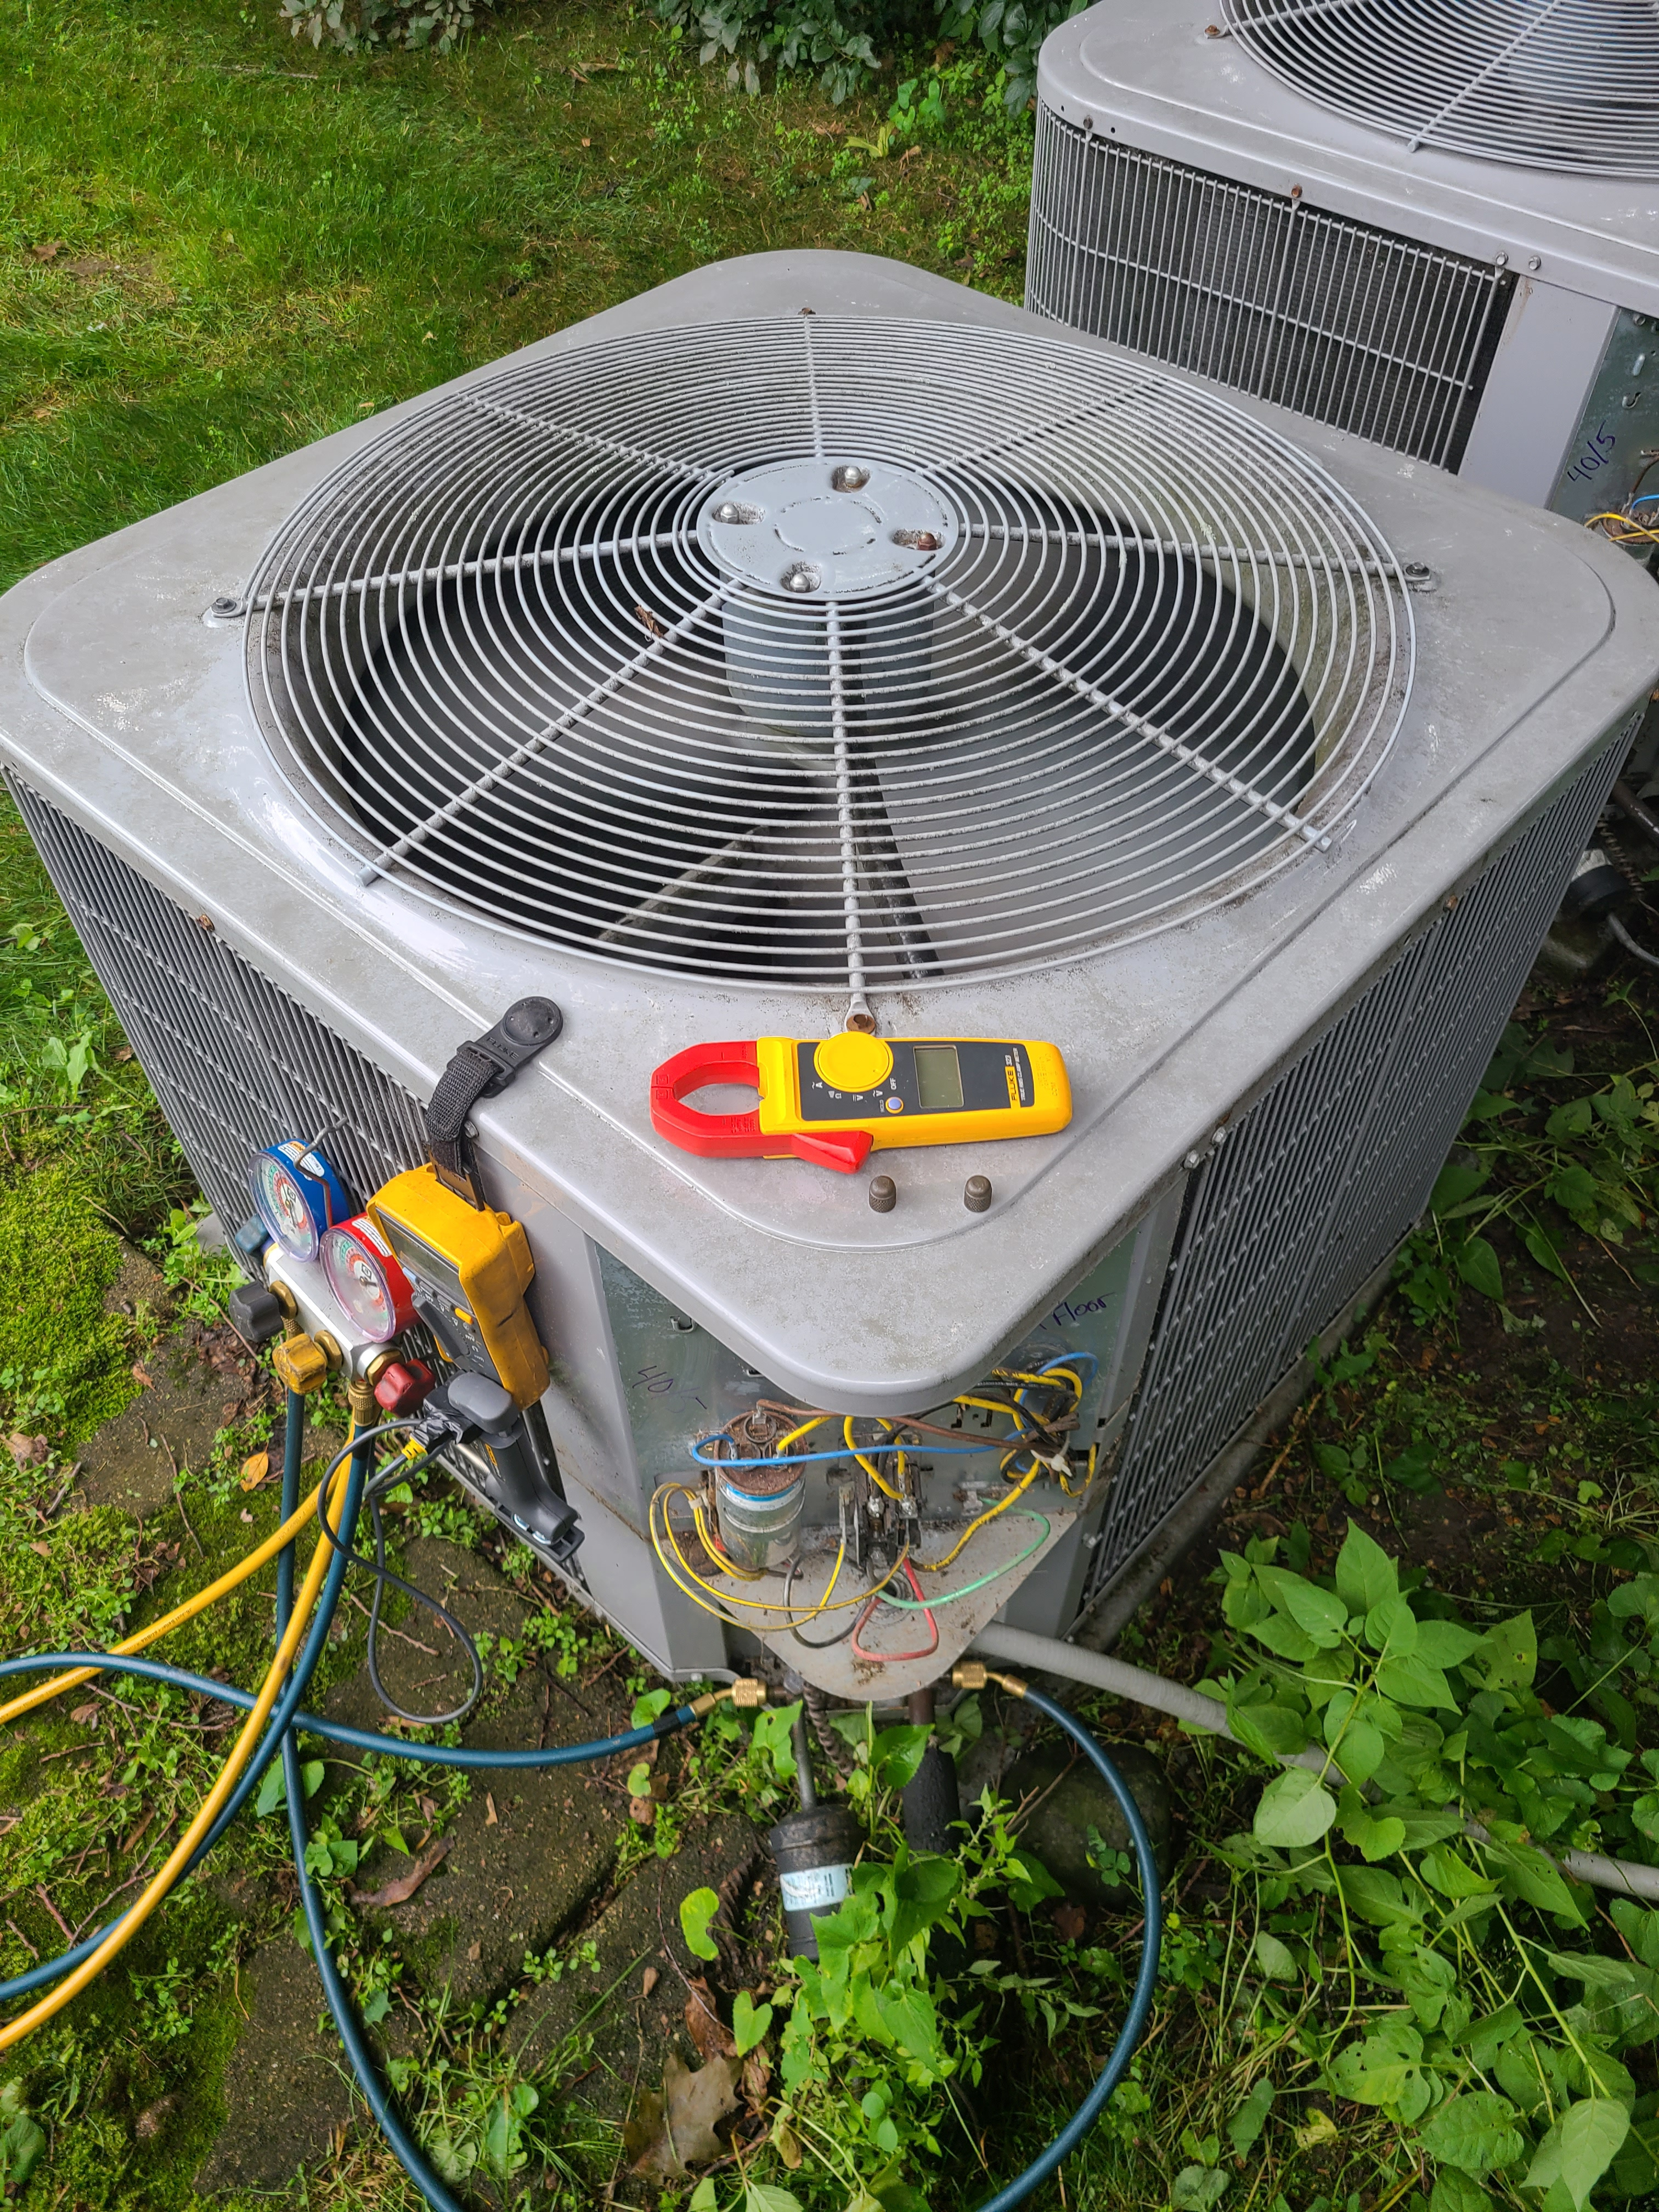 Carrier ac system summer maintenance.  System cleaned and checked and ready for summer.